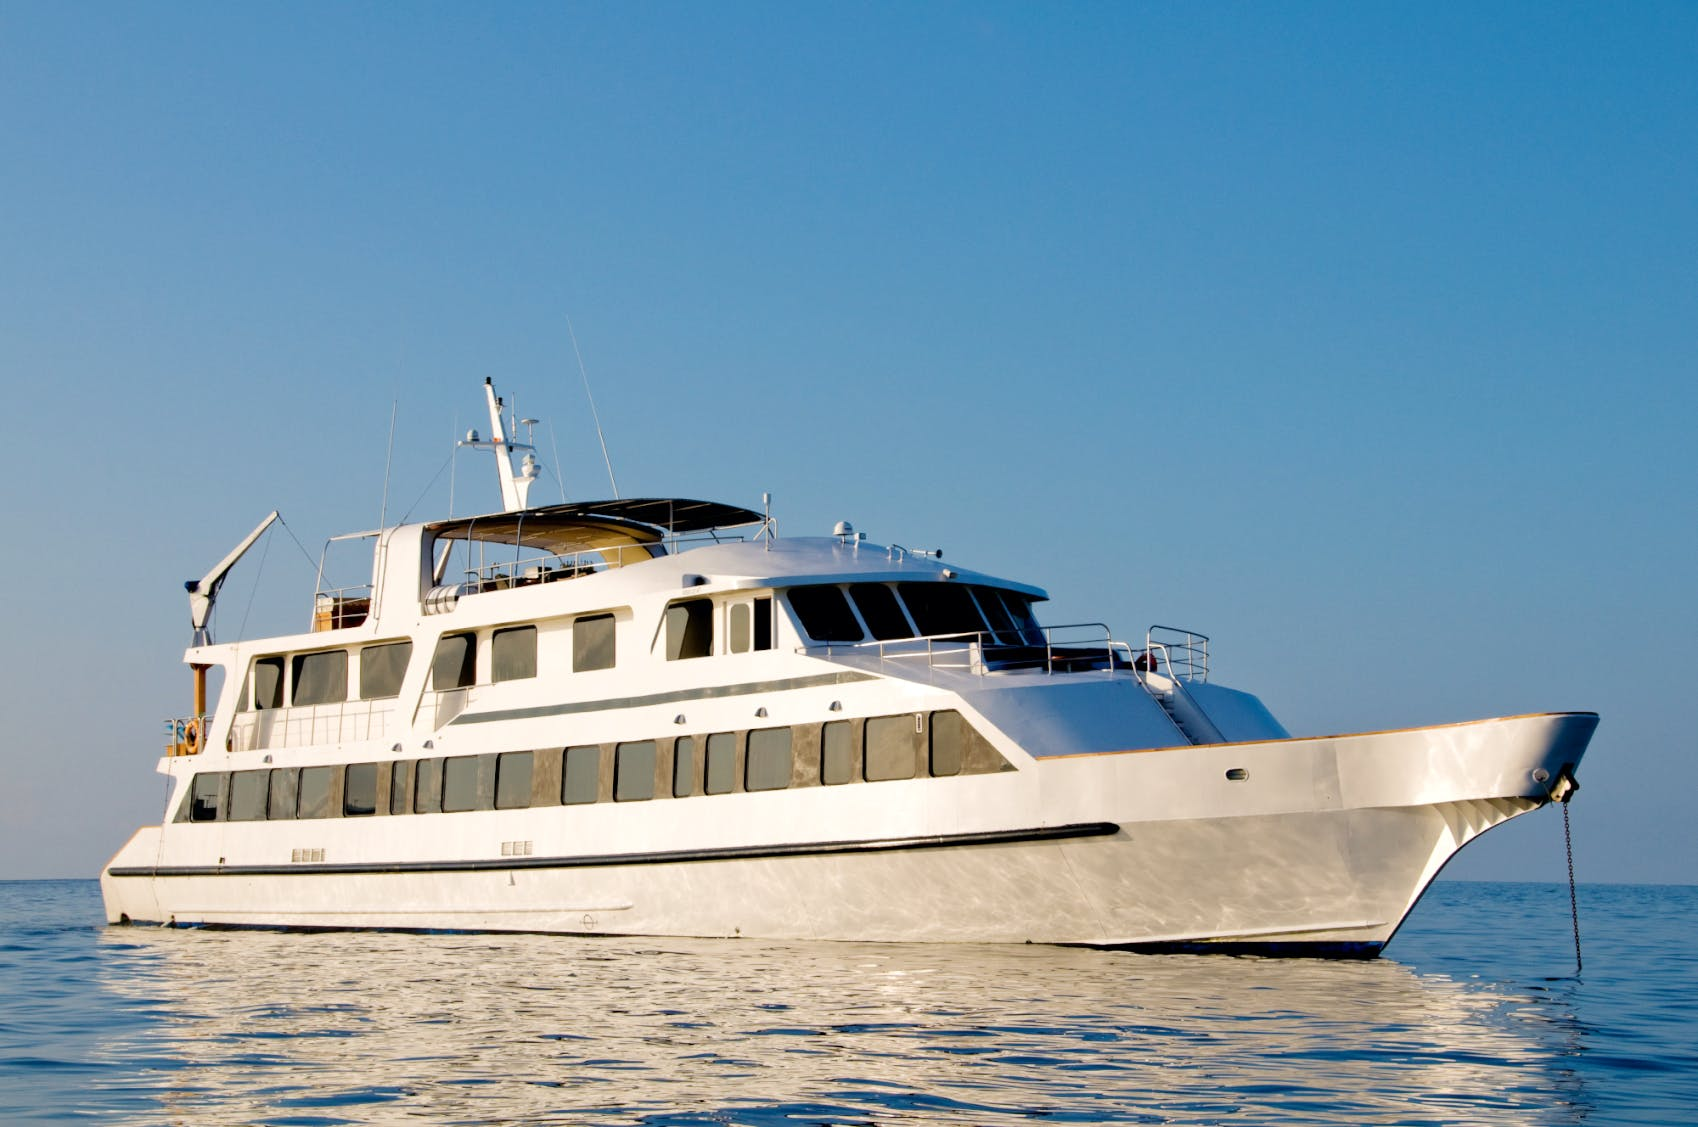 Galapagos Charter Yacht Integrity profile